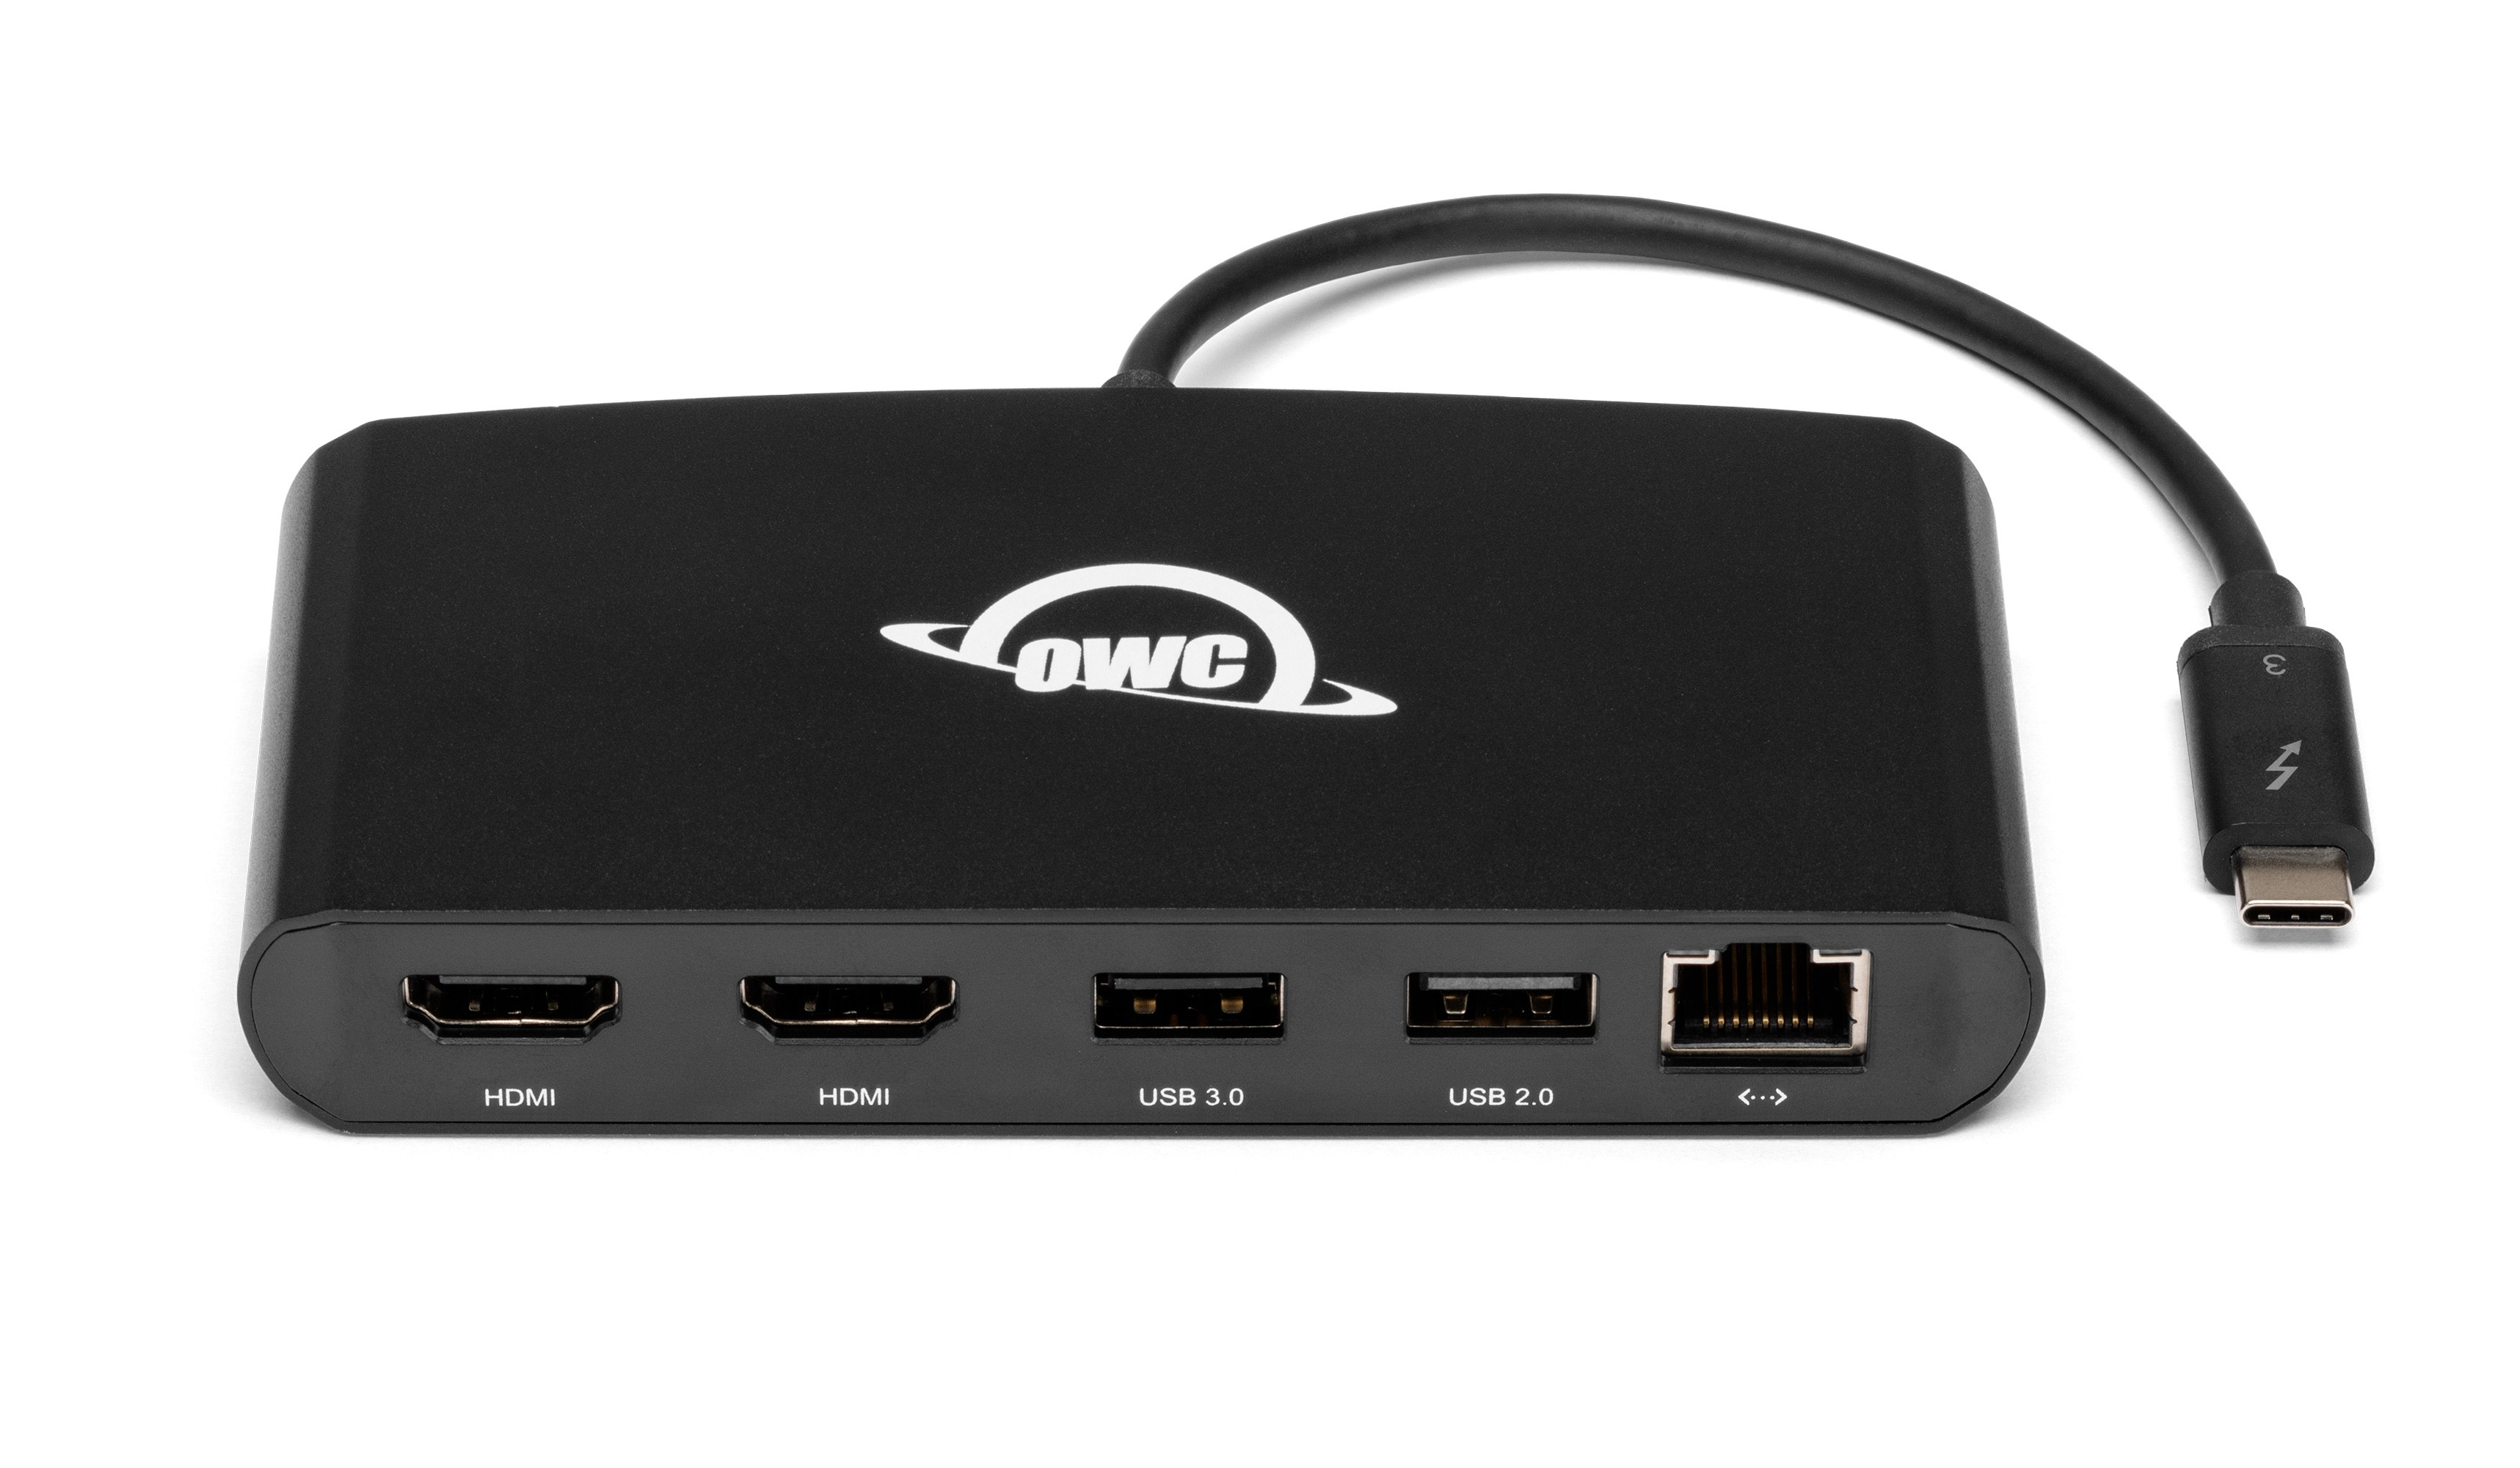 OWC 5-Port Thunderbolt 3 mini Dock - 2 x HDMI, 1 x USB 3, 1 x USB 2, Ethernet 1000BT *Bus-Powered*, OWCTB3MDK5P